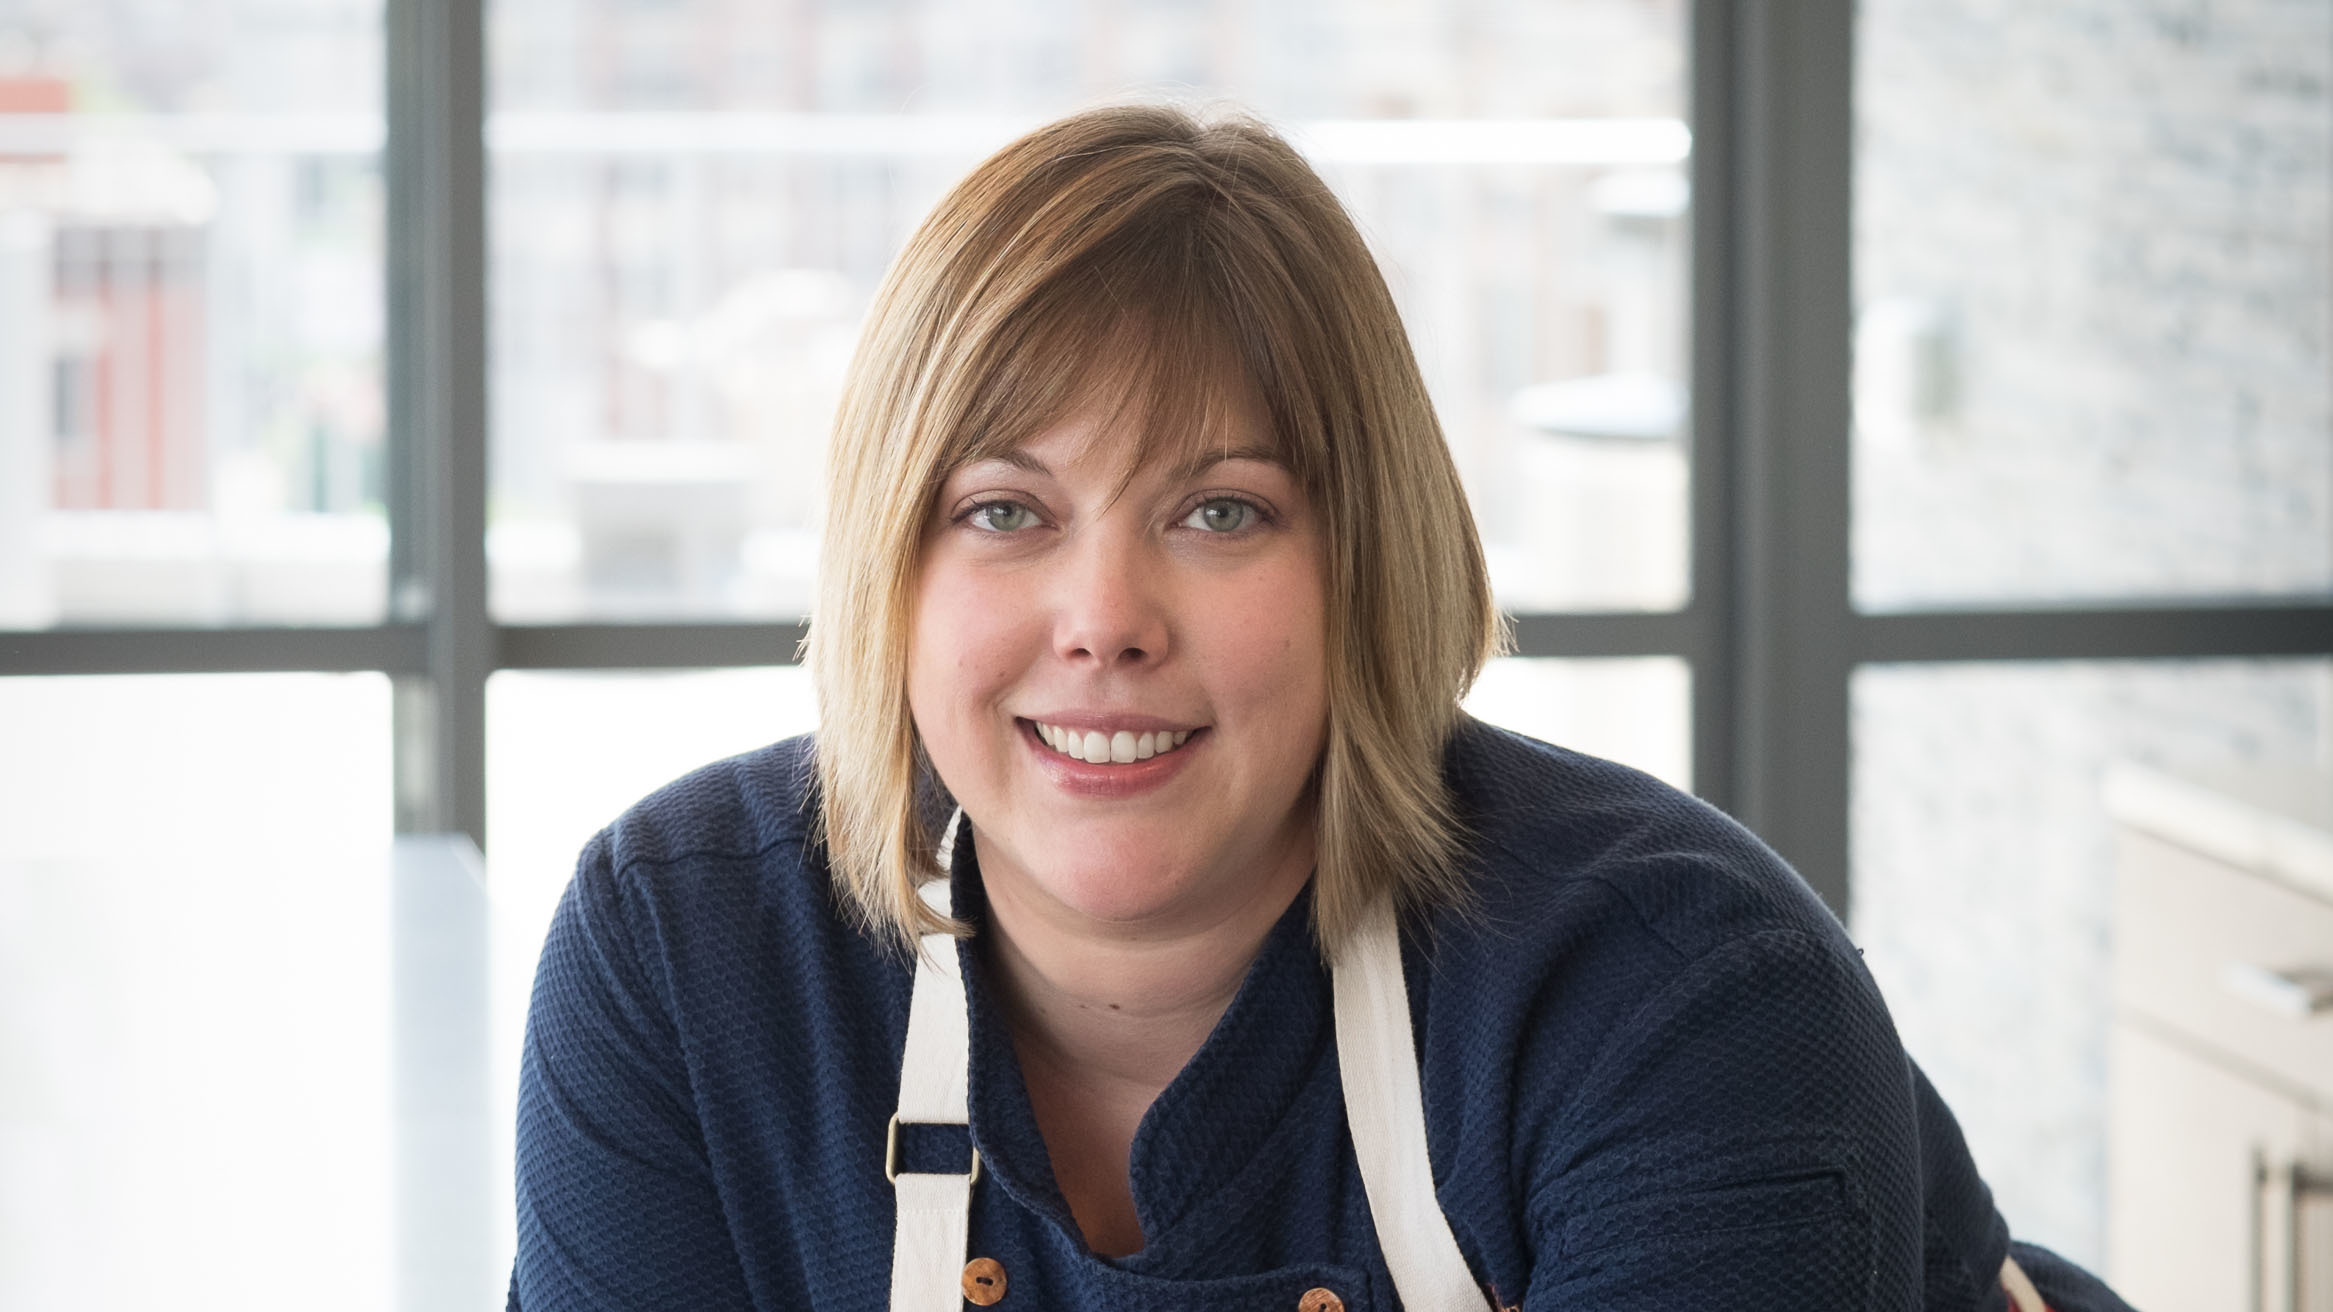 Chef Sarah Grueneberg of Monteverde shares her favorite spots for fall